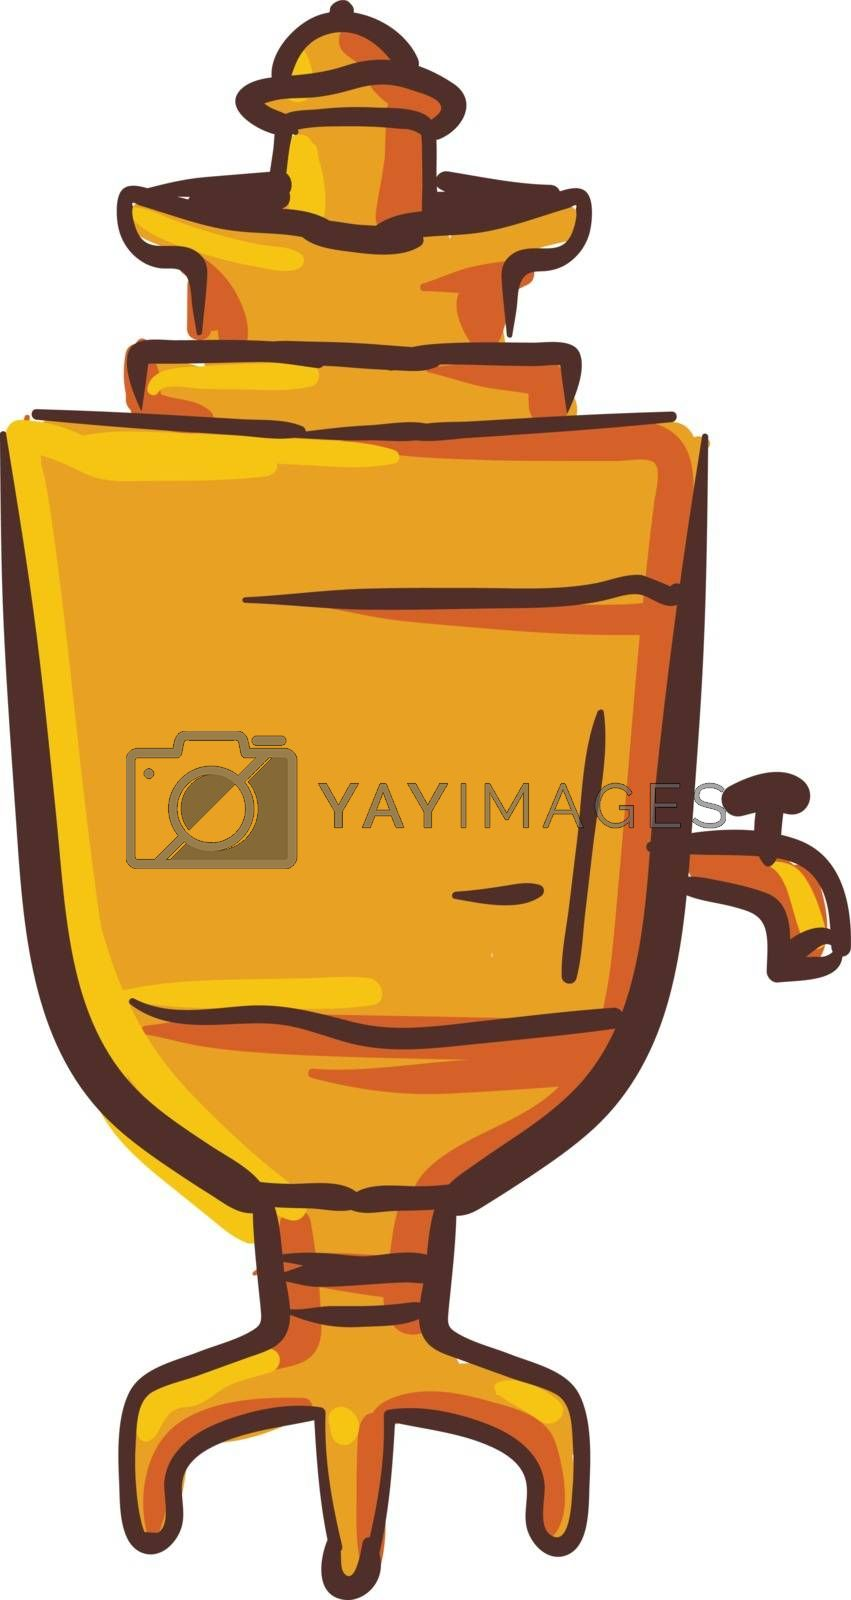 Royalty free image of Clipart of brown-colored samovar vector or color illustration by Morphart